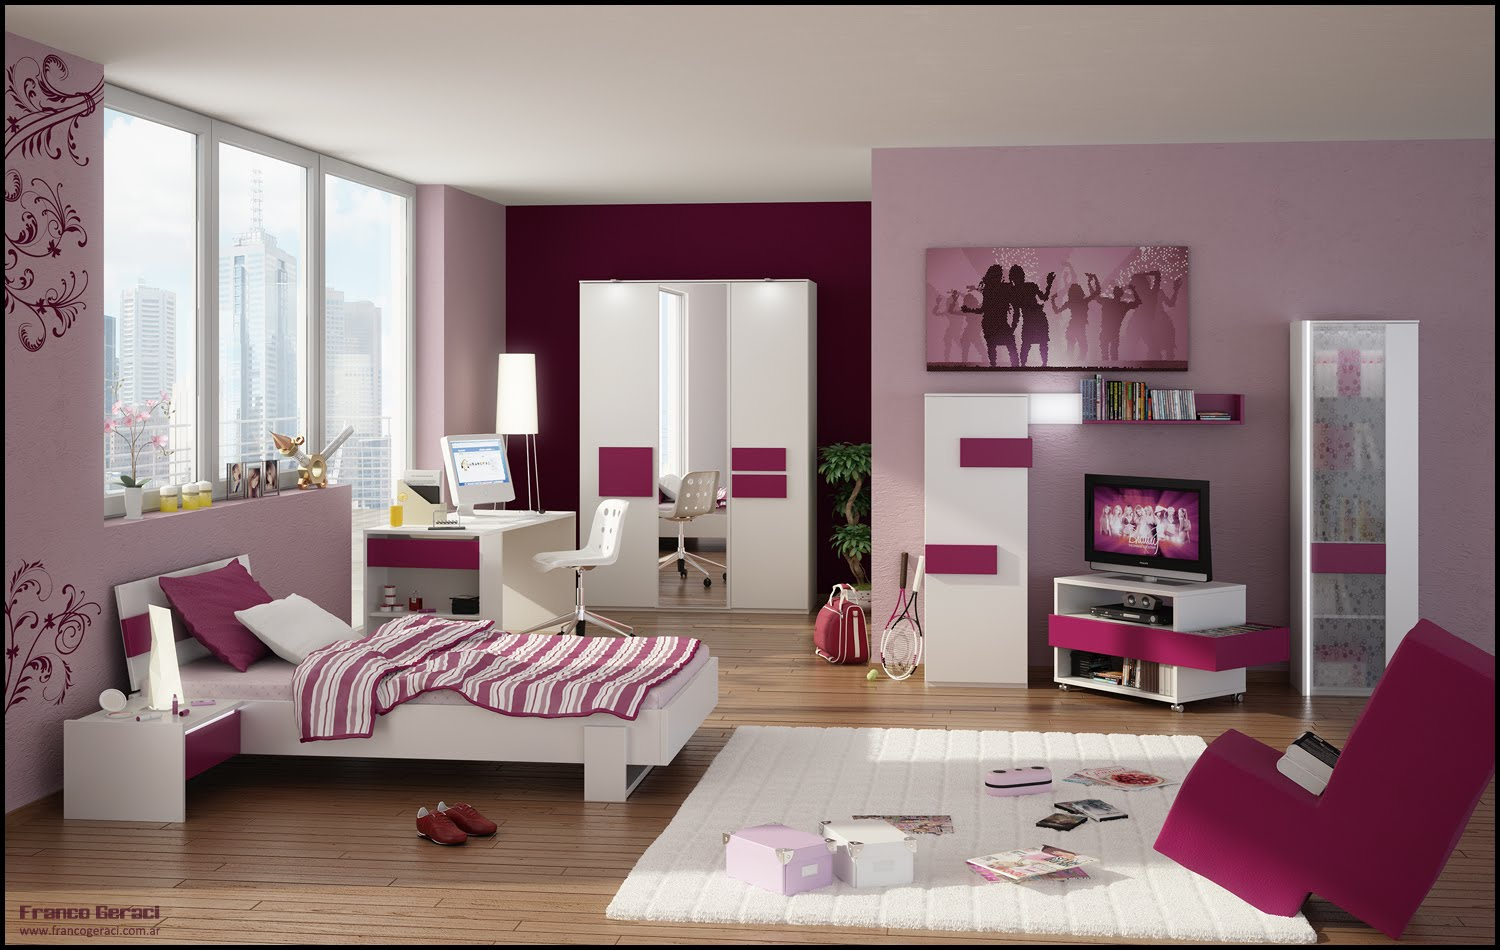 Arti 39 s dream themes teenage room ideas for girls for Bedroom ideas for tween girl